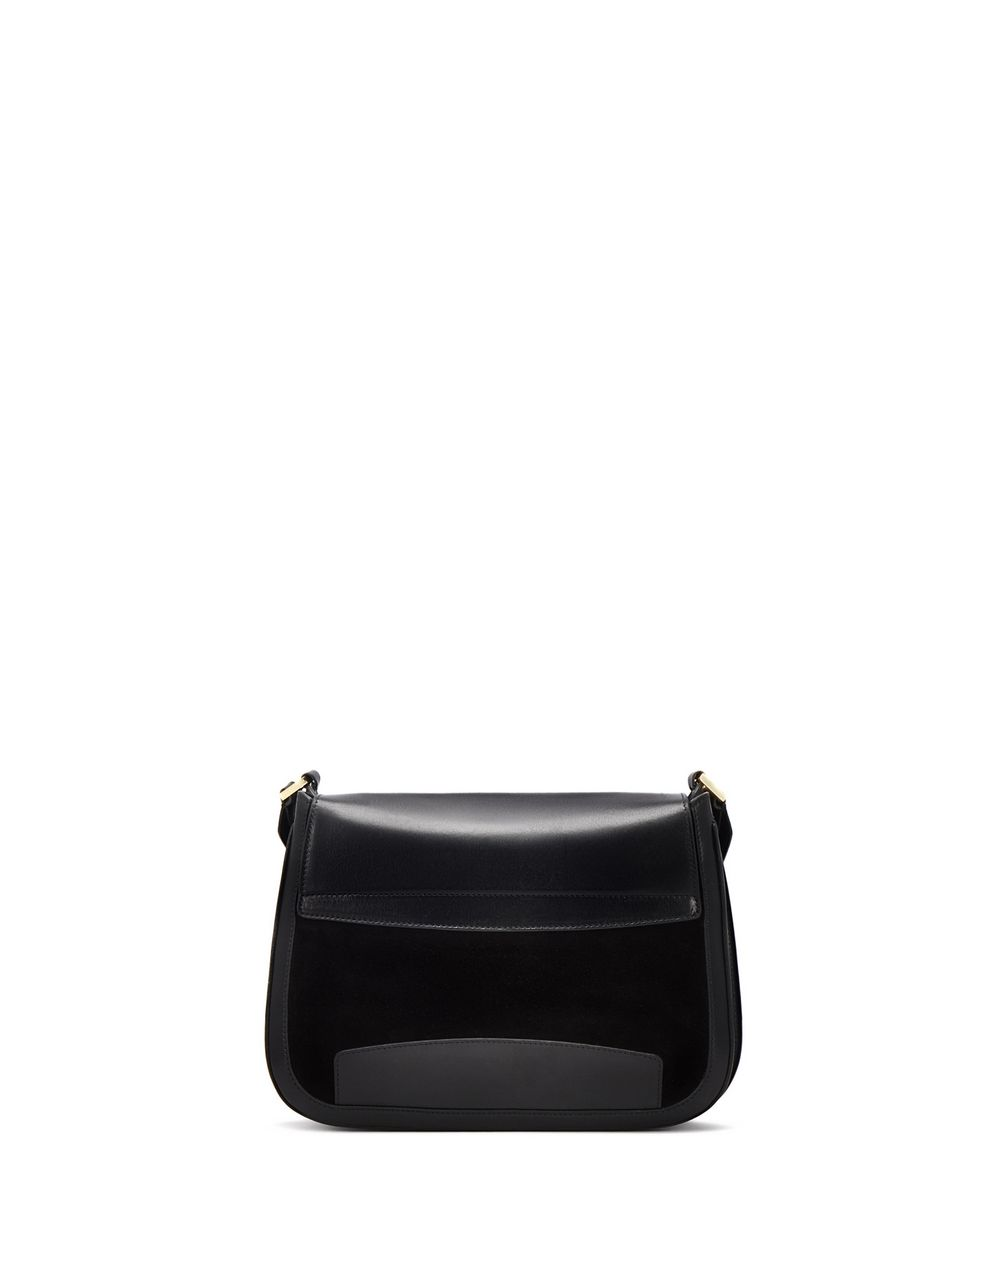 BLACK SWAN BAG - Lanvin